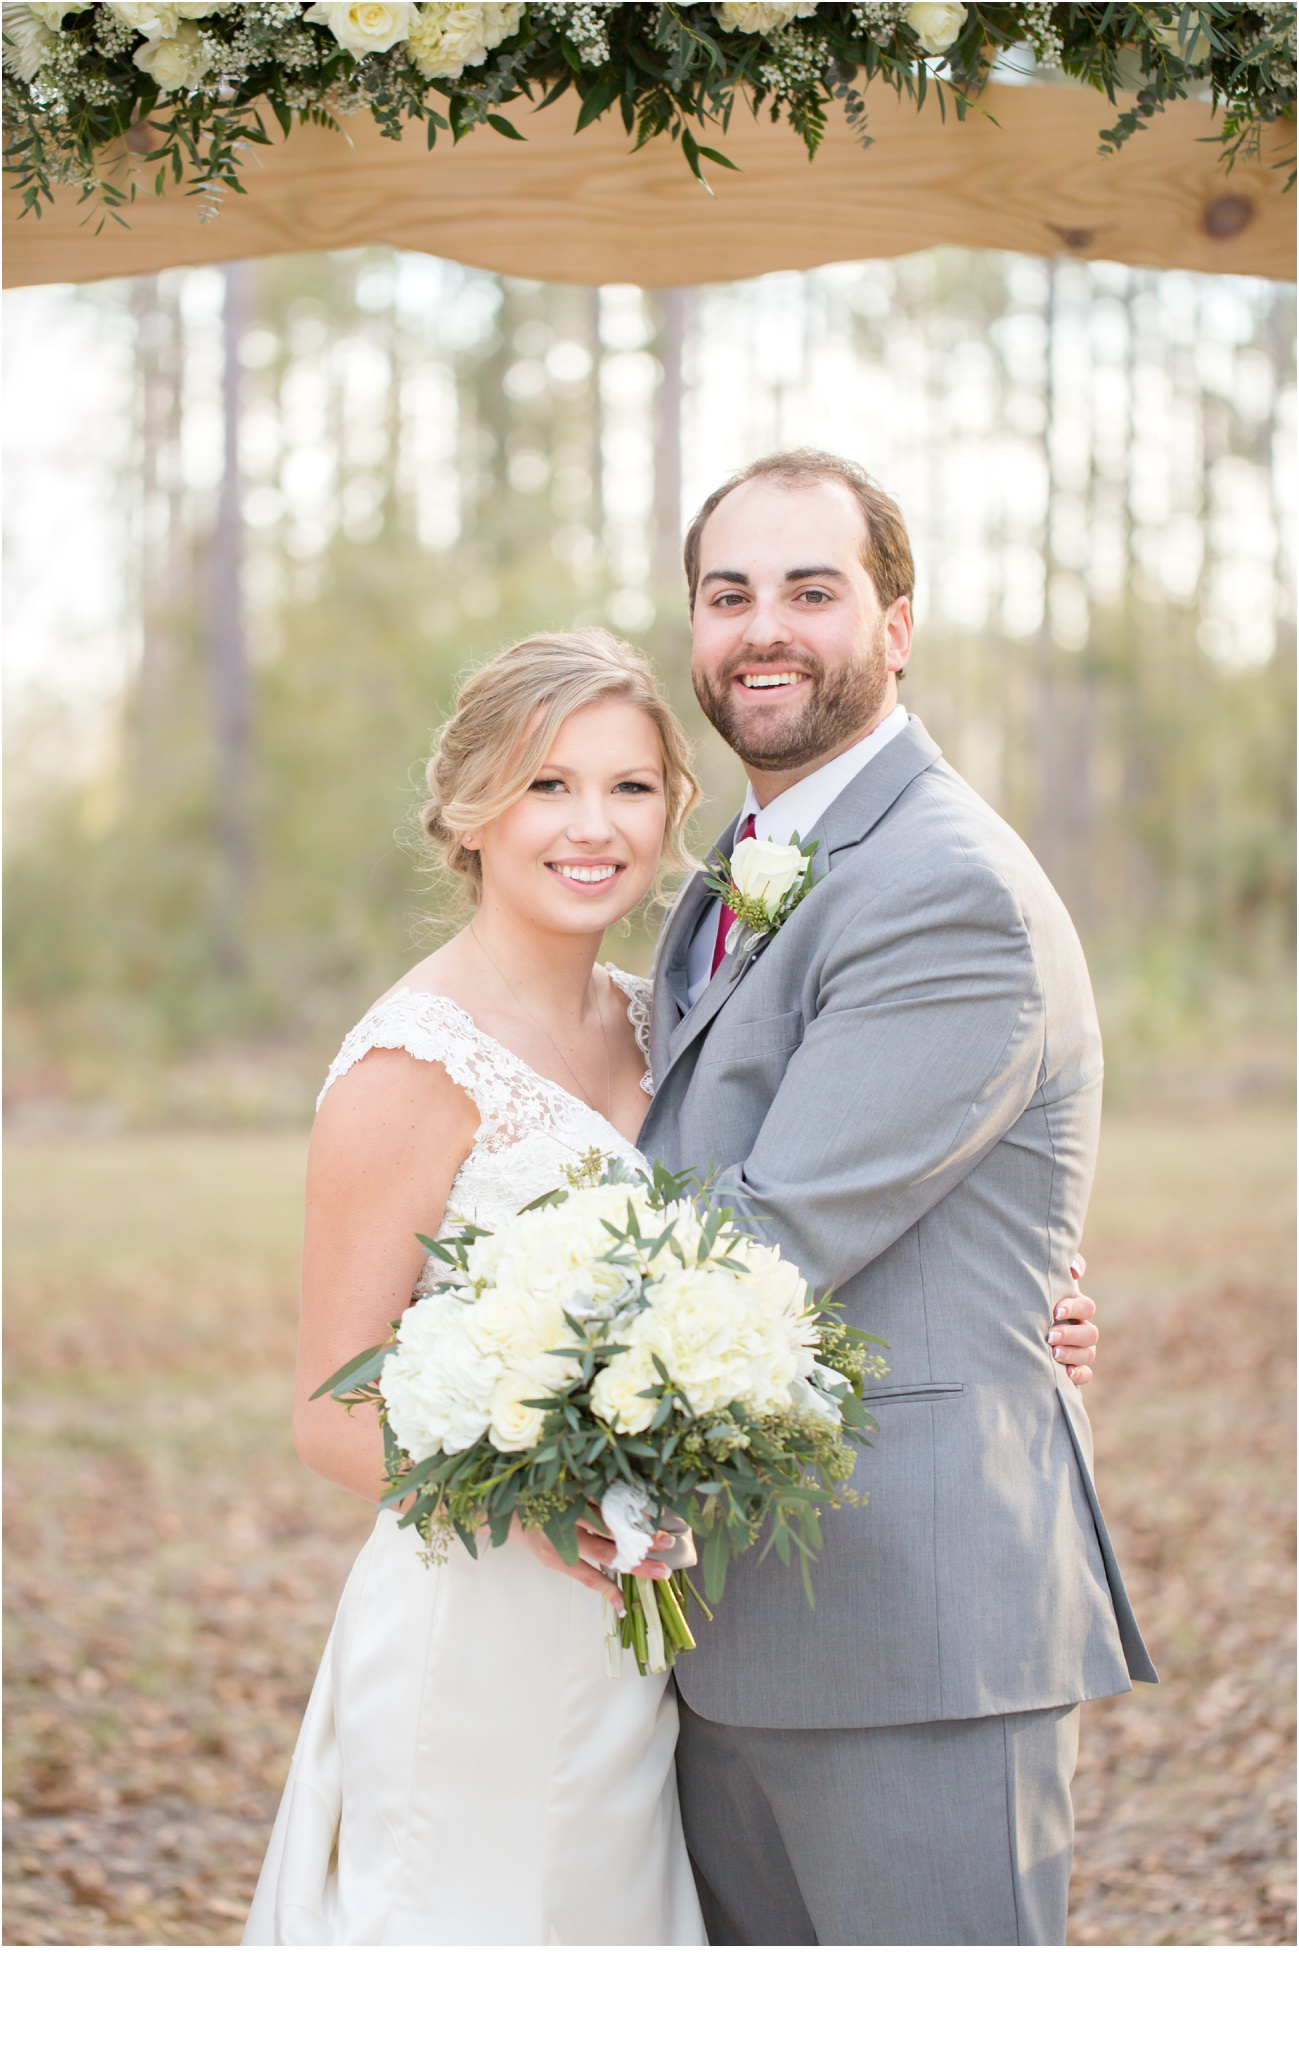 Rainey_Gregg_Photography_St._Simons_Island_Georgia_California_Wedding_Portrait_Photography_0518.jpg